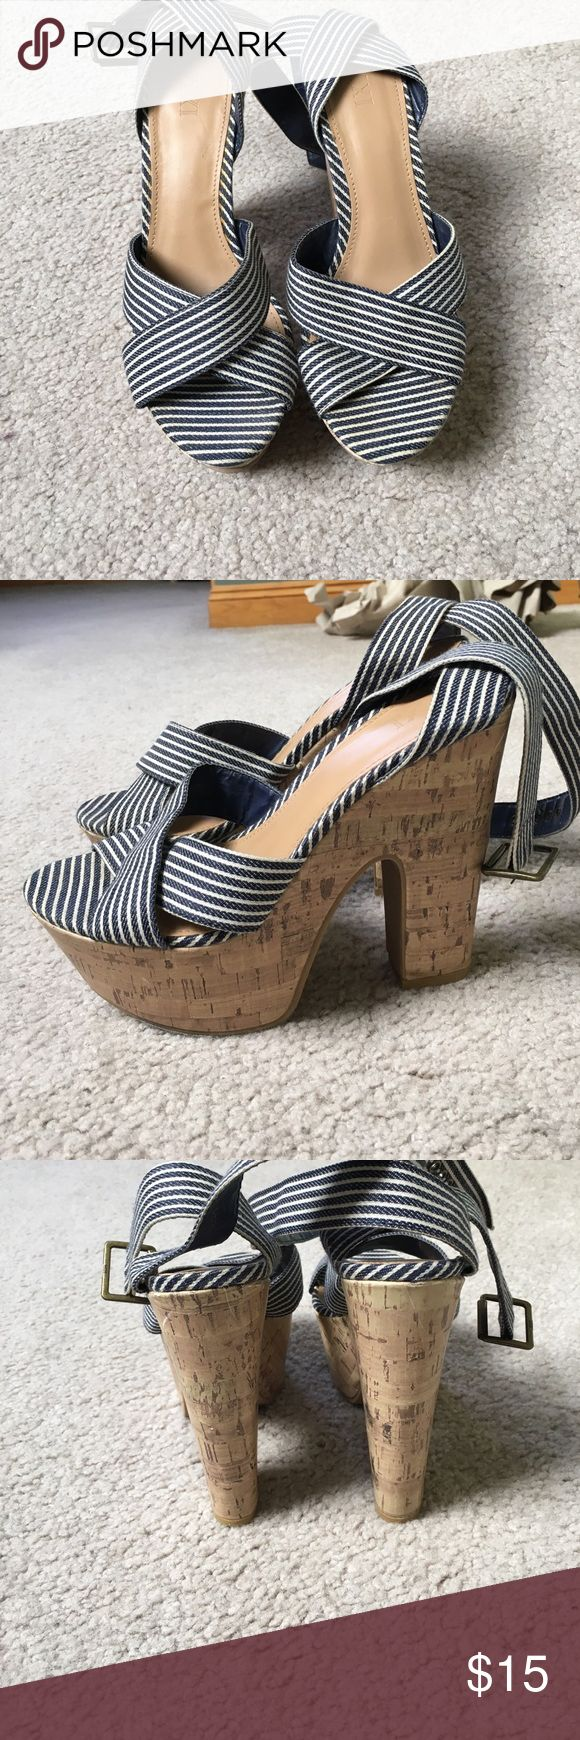 Nautical Strappy Heels These shoes absolutely rock! With their high cork chunky platform heel. The blue and white striped pattern with the strappy buckles make for a perfect summer shoe! Forever 21 Shoes Heels